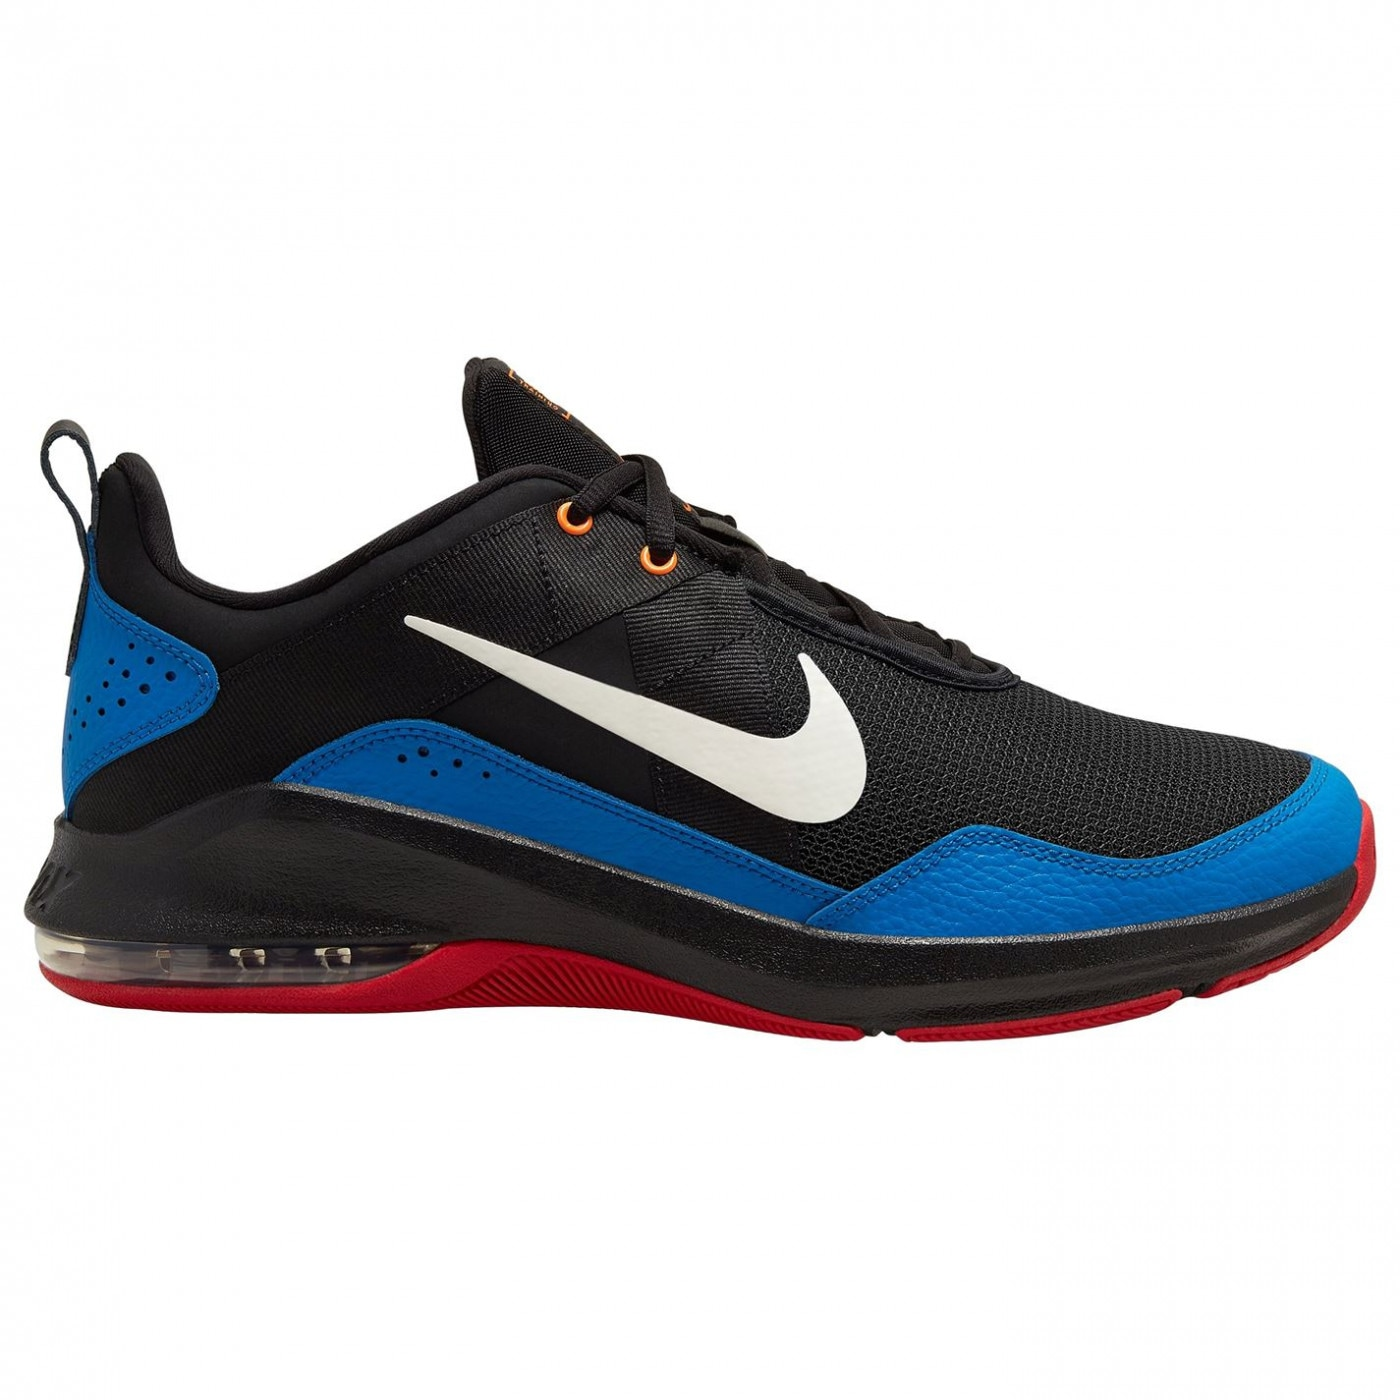 Men's trainers Nike Air Max Alpha Trainer 2